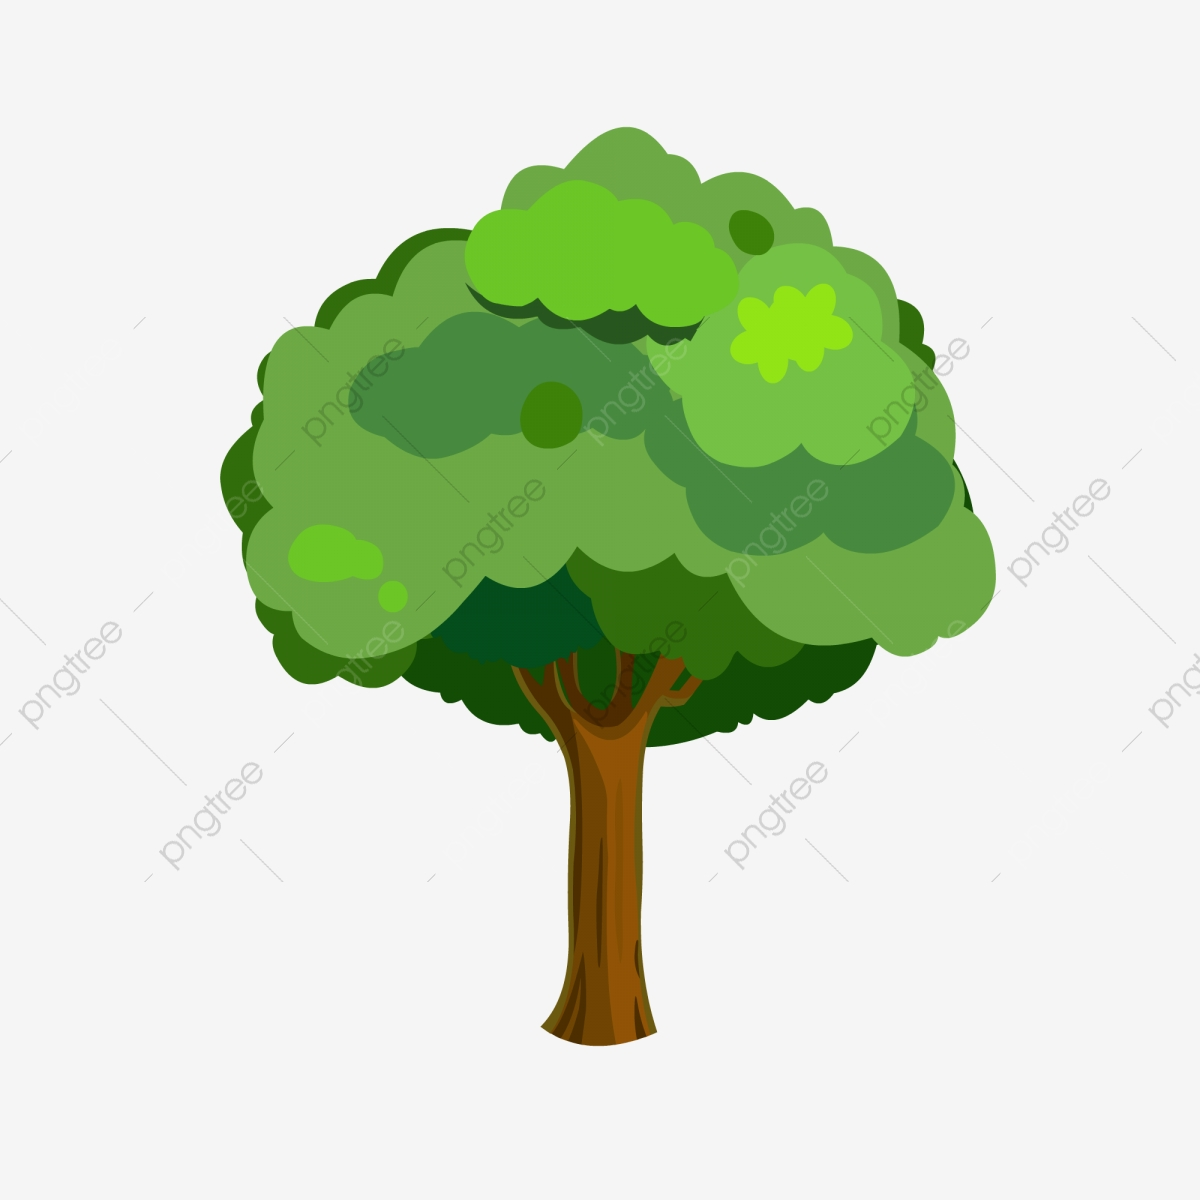 Hand Drawn Cartoon Tree Material Tree Clipart Tree Logo Greenery Png And Vector With Transparent Background For Free Download Christmas tree cartoon cartoon tree decoration cartoon christmas tree tree cartoon cartoon tree pics cartoon snow tree cartoon palm tree images. https pngtree com freepng hand drawn cartoon tree material 4061172 html